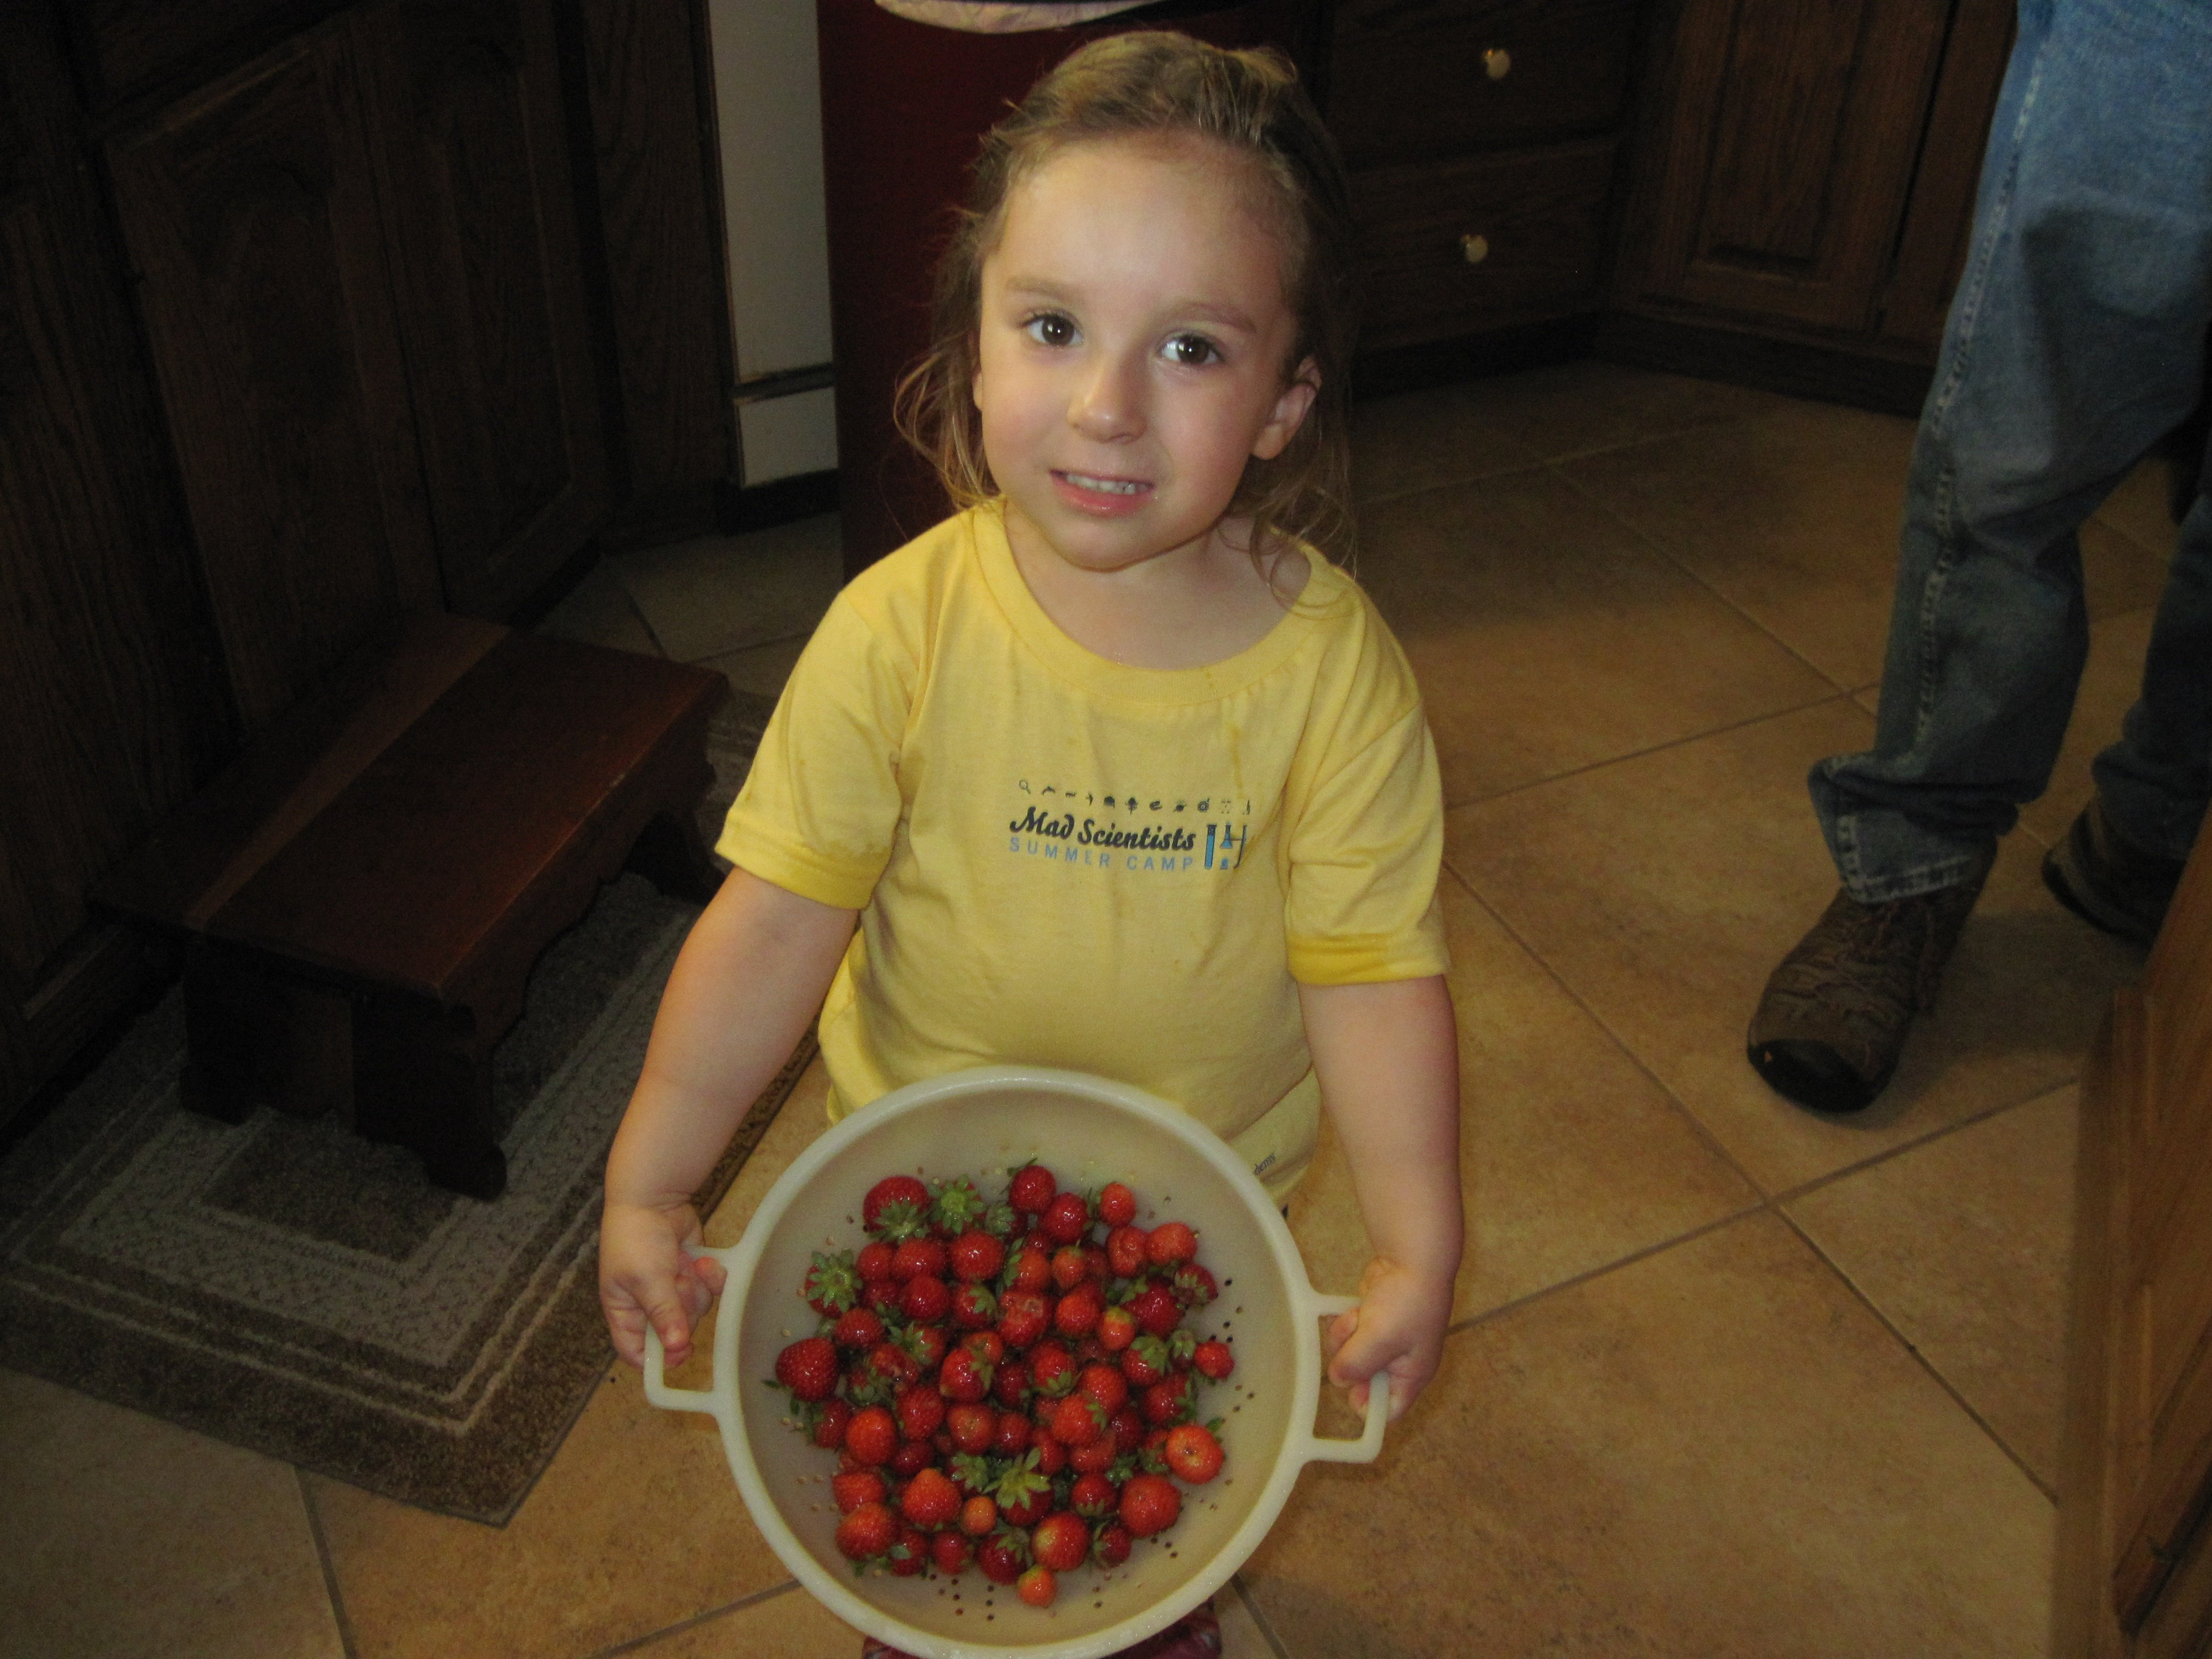 Natalie & Strawberries